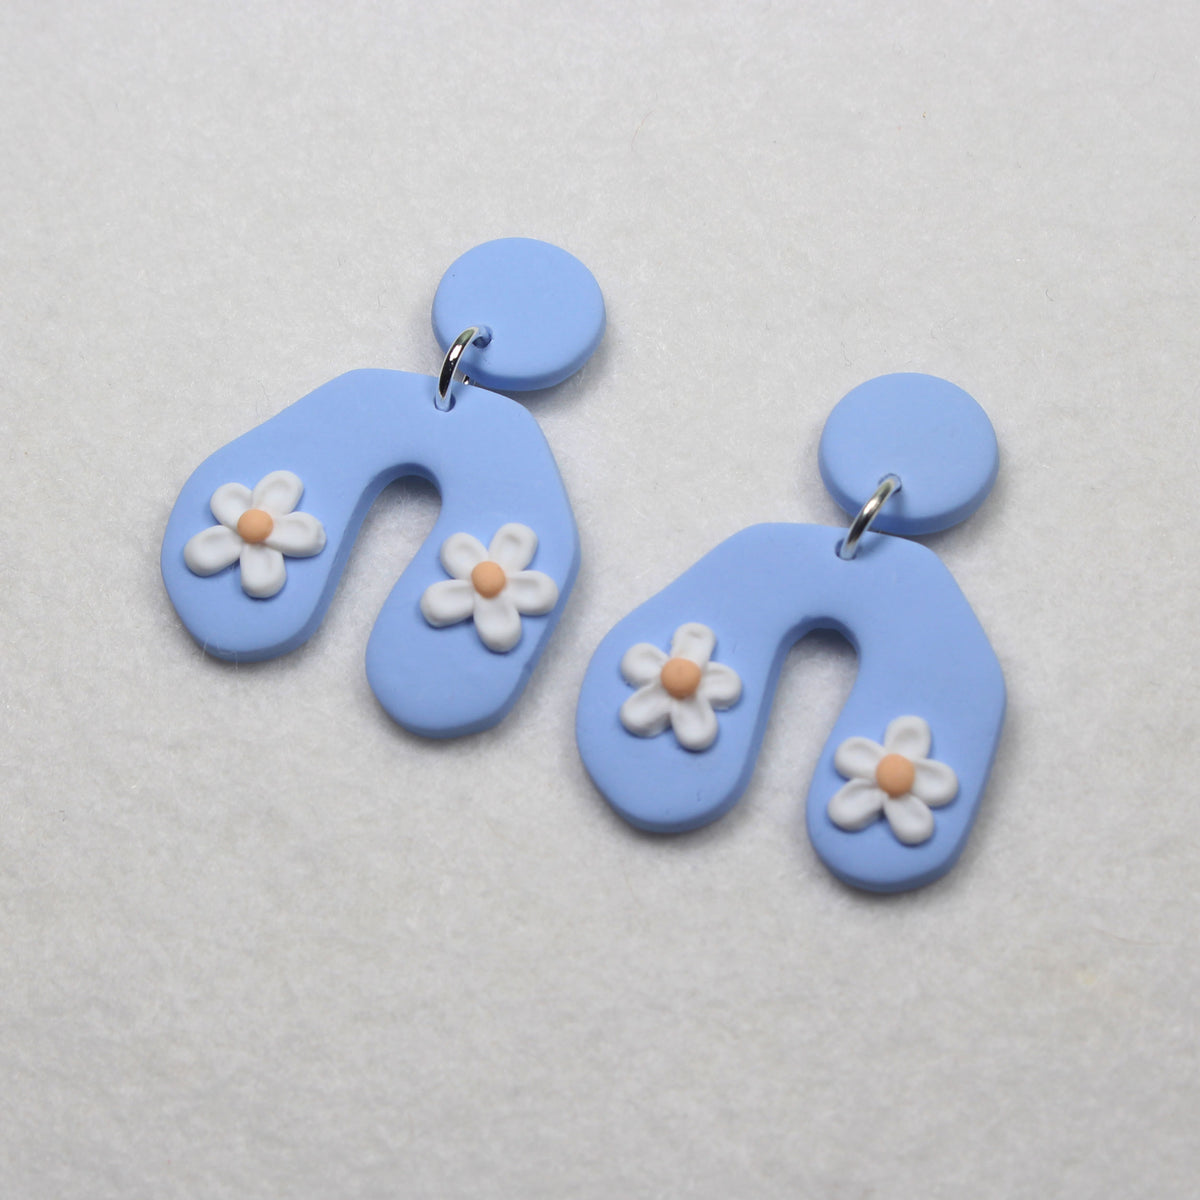 nickel free stud earrings made from polymer clay. white daisies on a pastel blue background